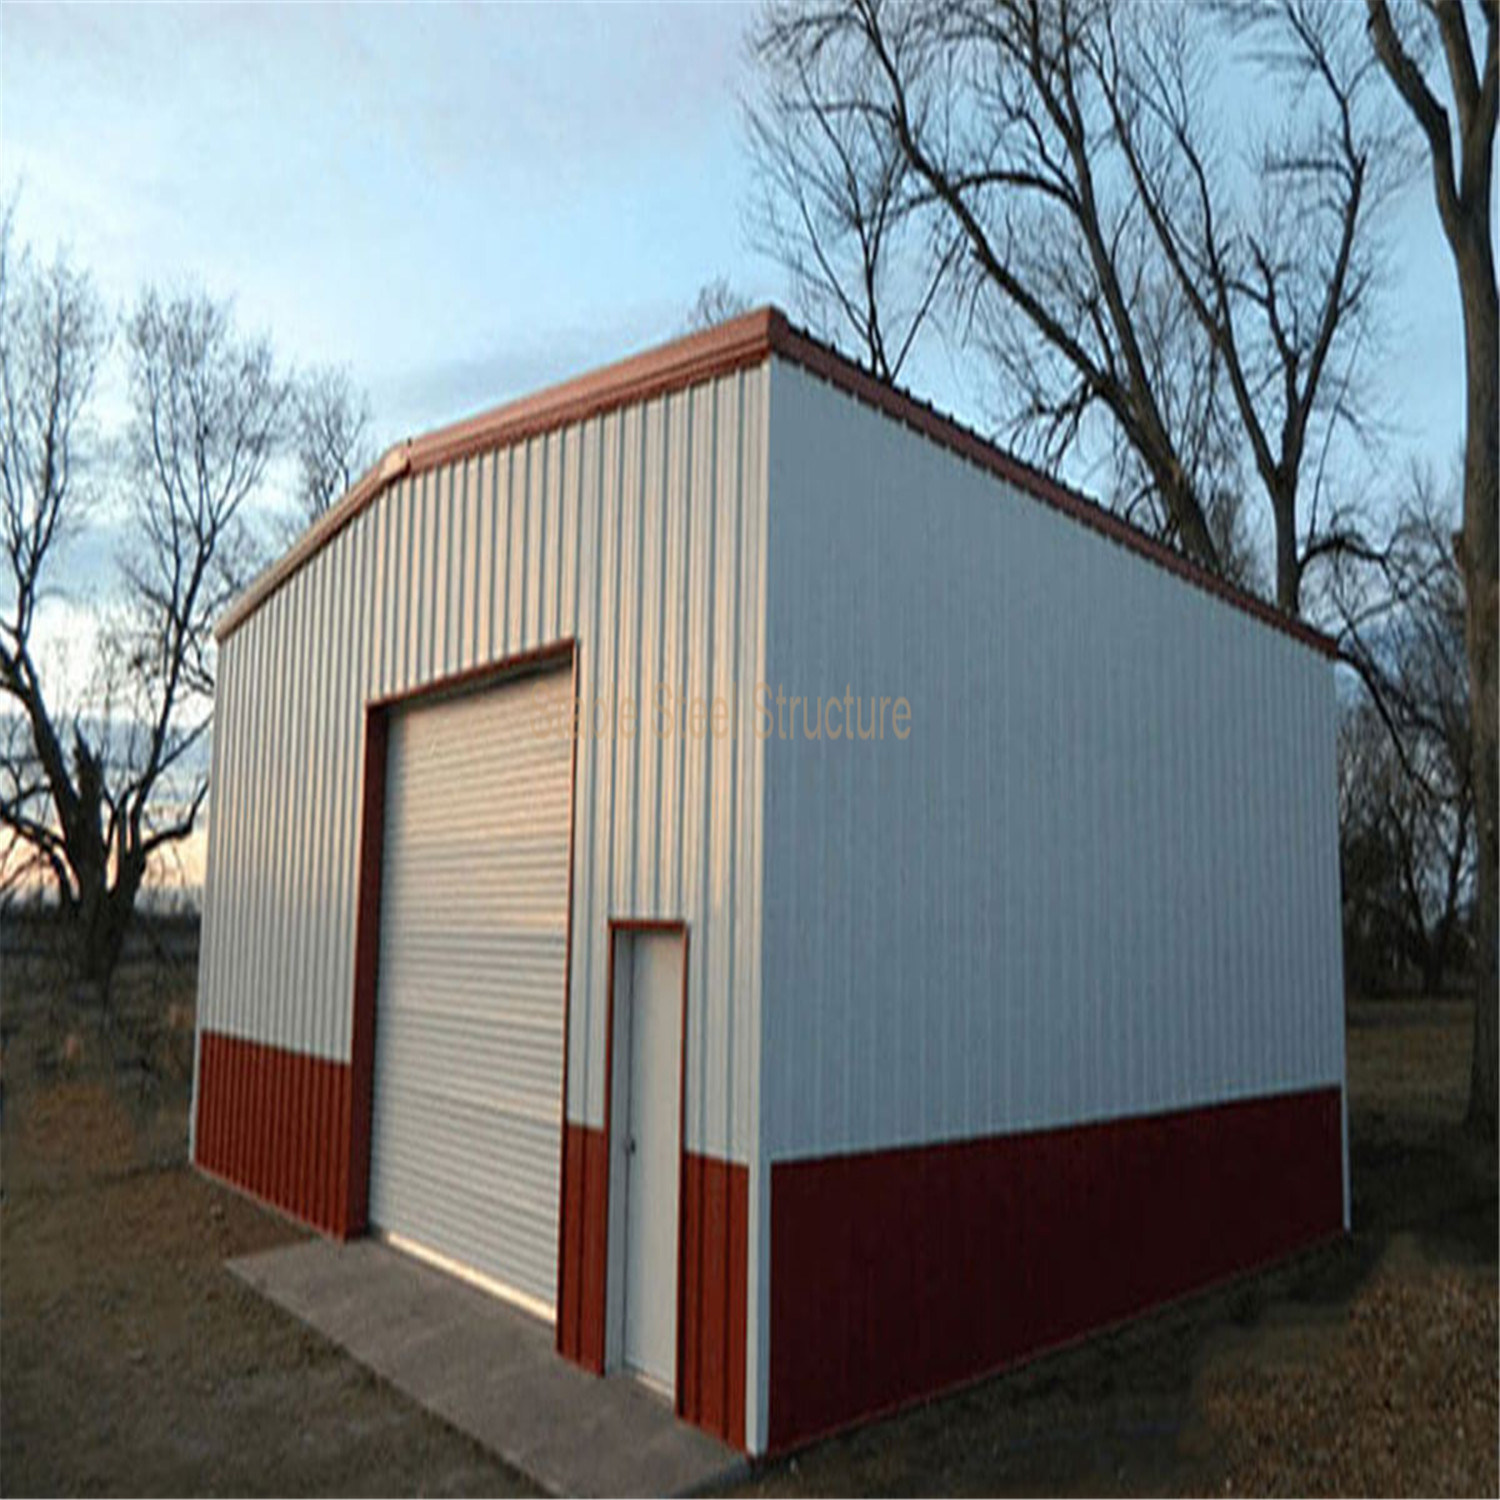 China Prefabricated Metal Buildings For Inventory China Metal Buildings Prefabricated Metal Buildings